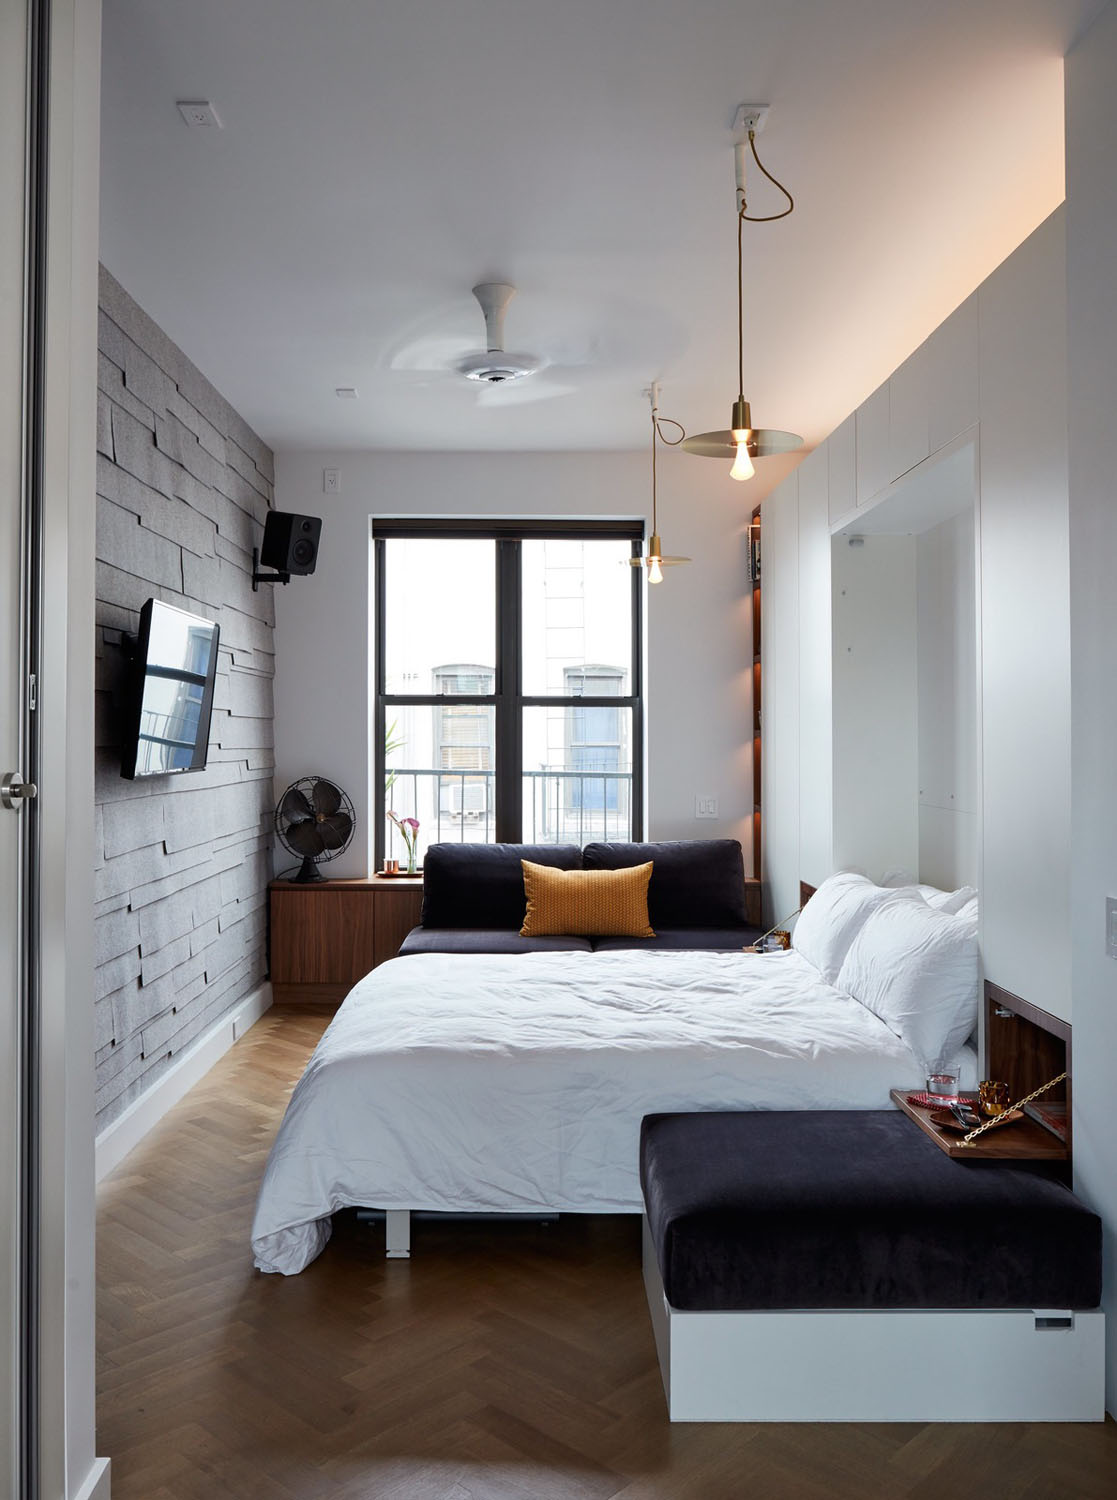 Apartment Living Room Decor Pinterest: Tiny 350 Square Foot Smart Apartment In New York City